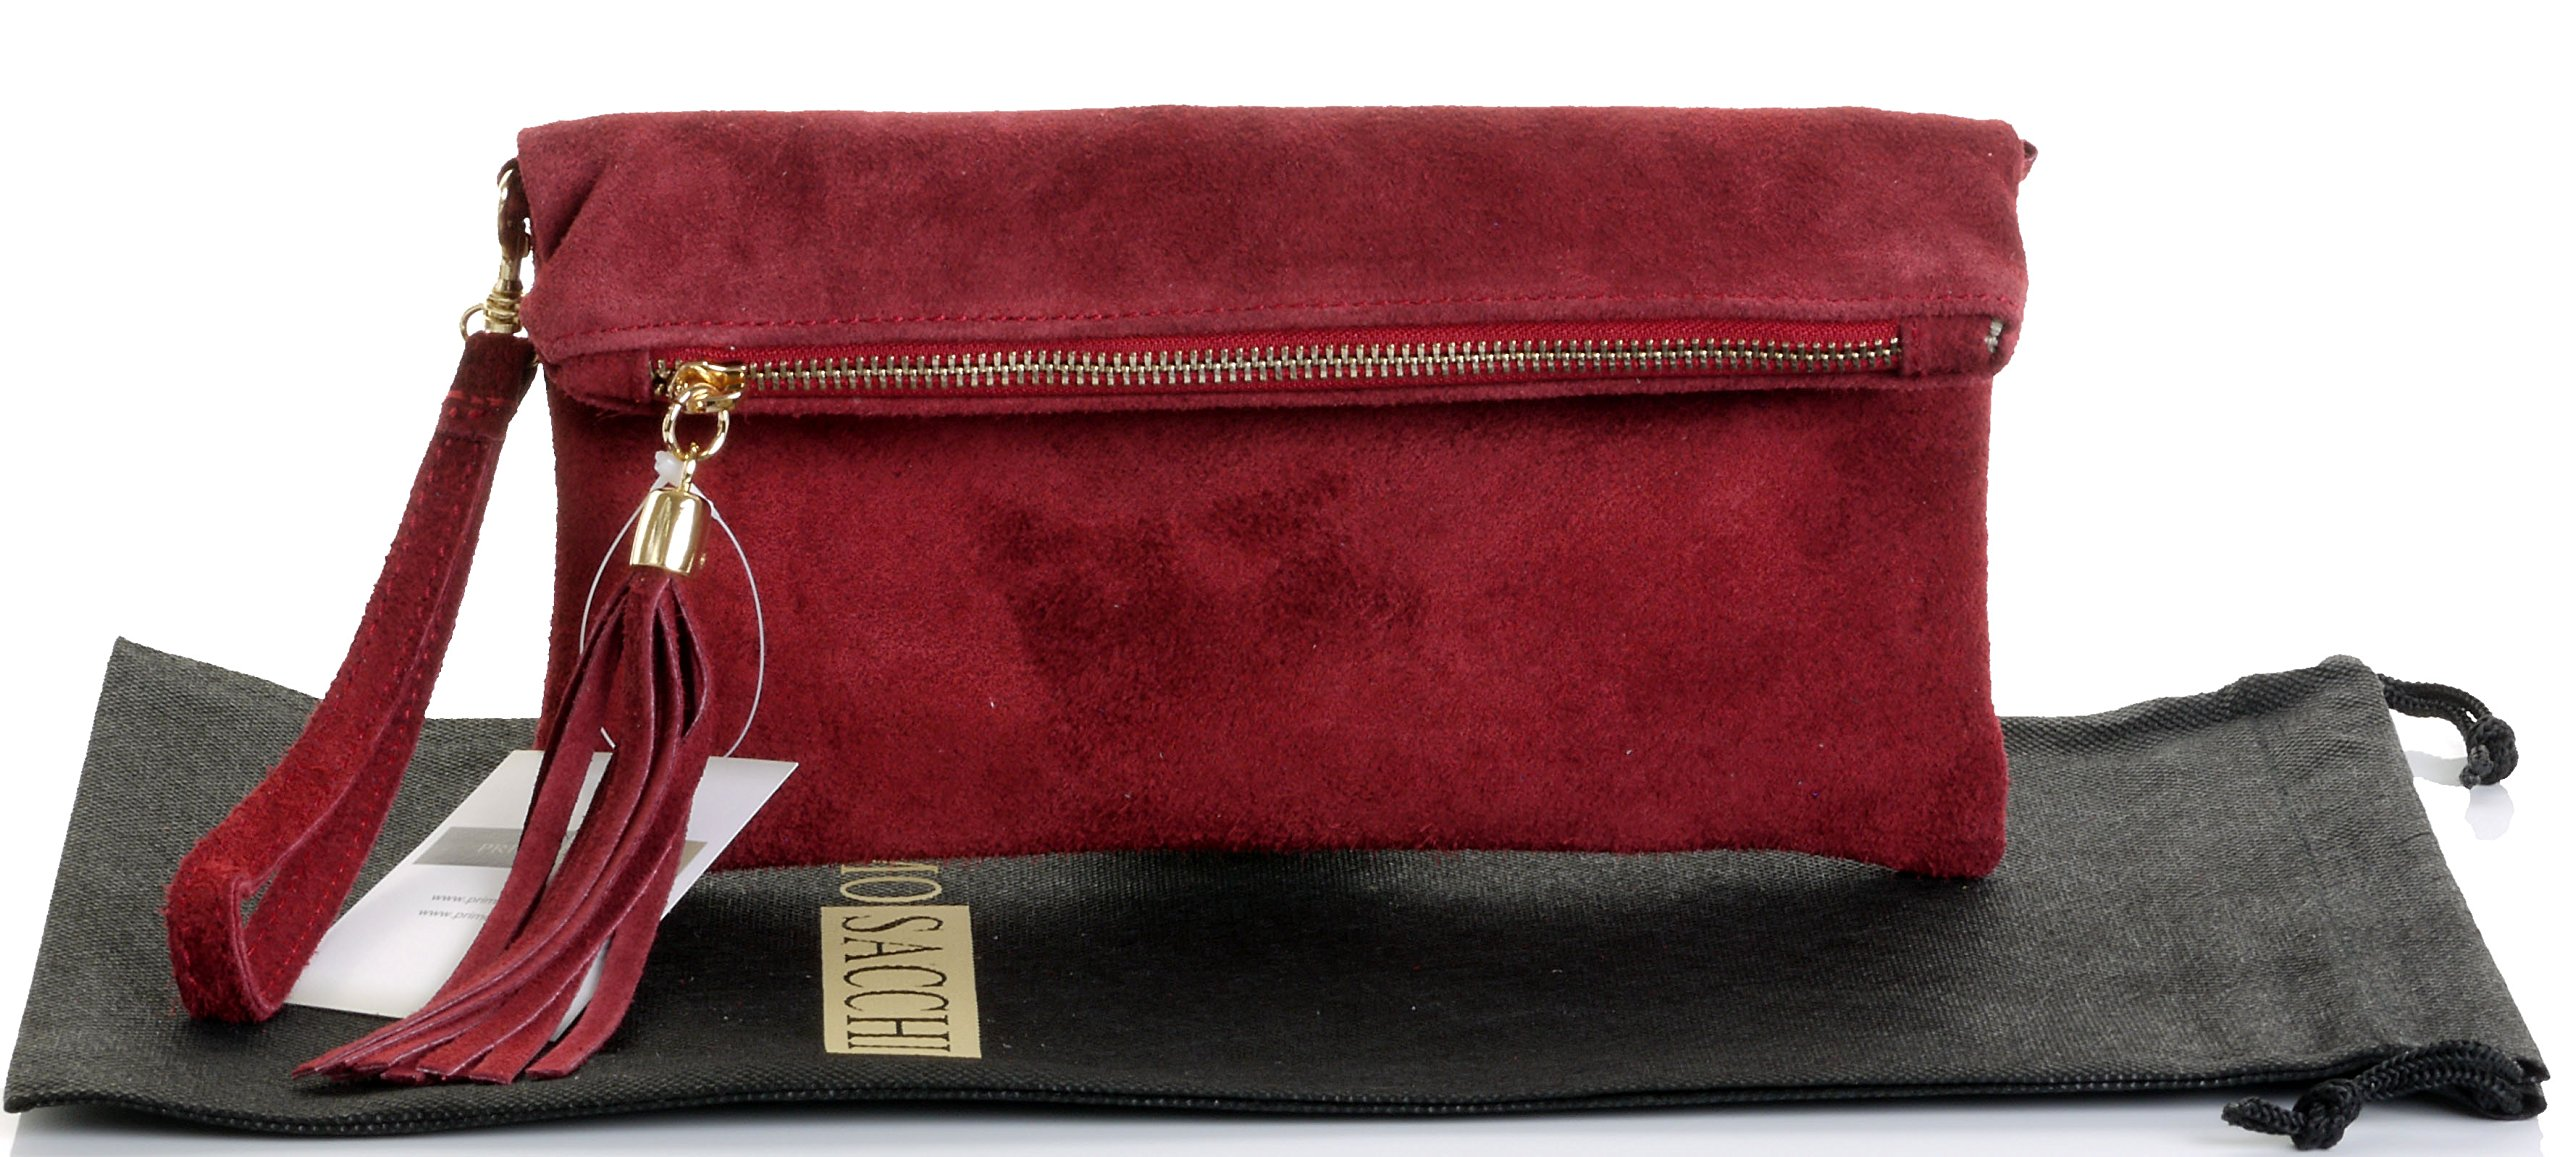 Italian Suede Leather Hand Made Dark Red Fold Over Clutch, Wrist or shoulder Bag. Includes a Branded Protective Storage Bag.